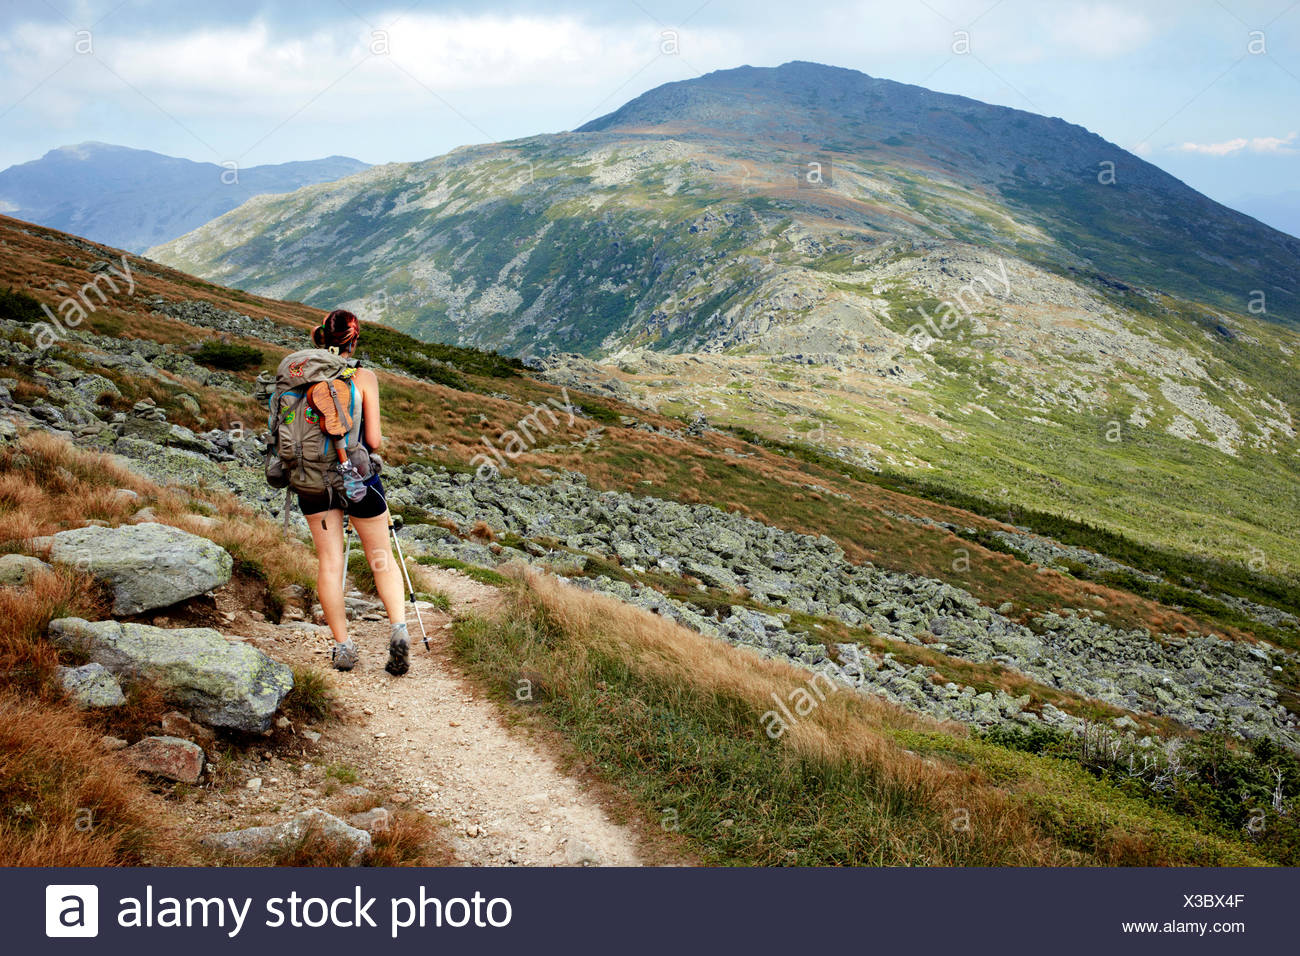 A hiker on the Appalachian Trail in the White Mountains. - Stock Image